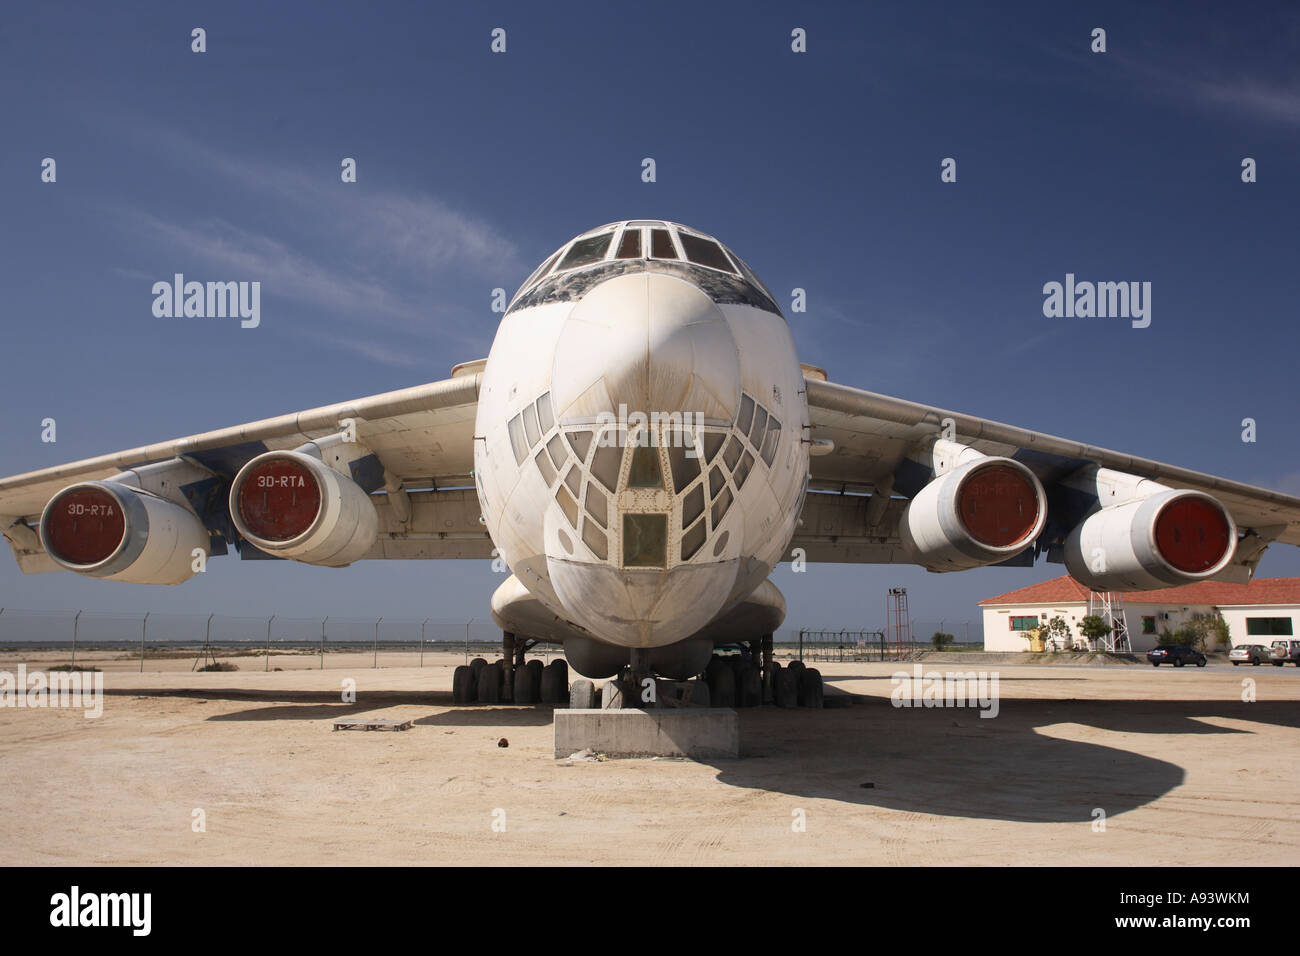 Ilyushin airplanes: the history of victories 37